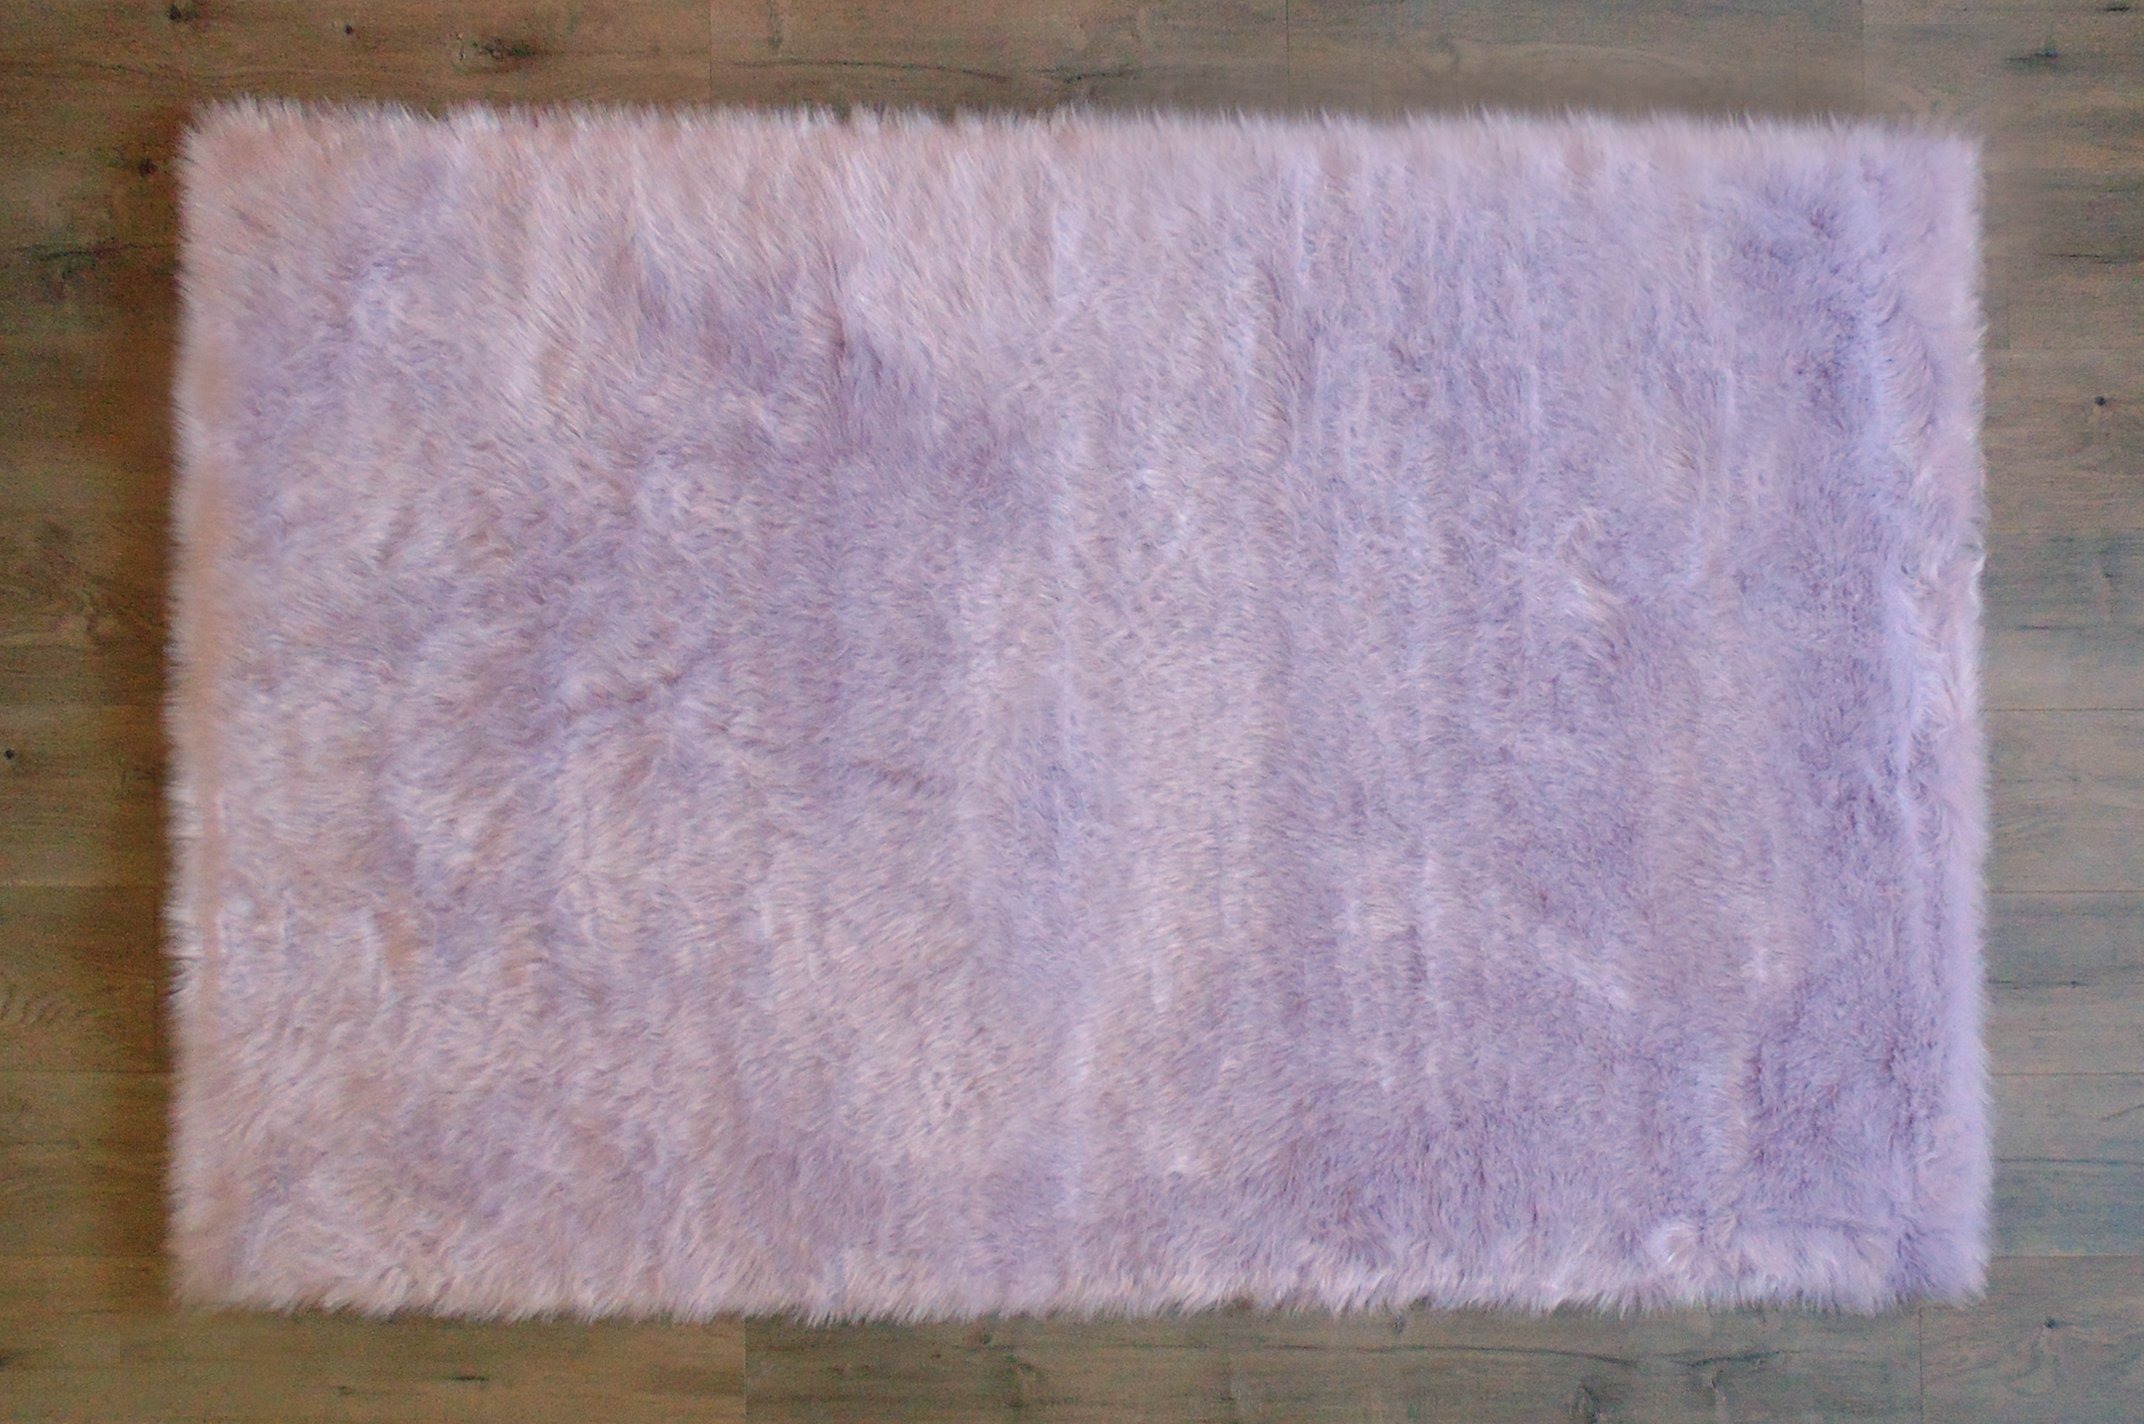 Machine Washable Faux Sheepskin Lavender Rug 4' x 6' - Soft and silky - Perfect for baby's room, nursery, playroom (48'' x 72'') - Fake fur area rug - Lavender 4x6